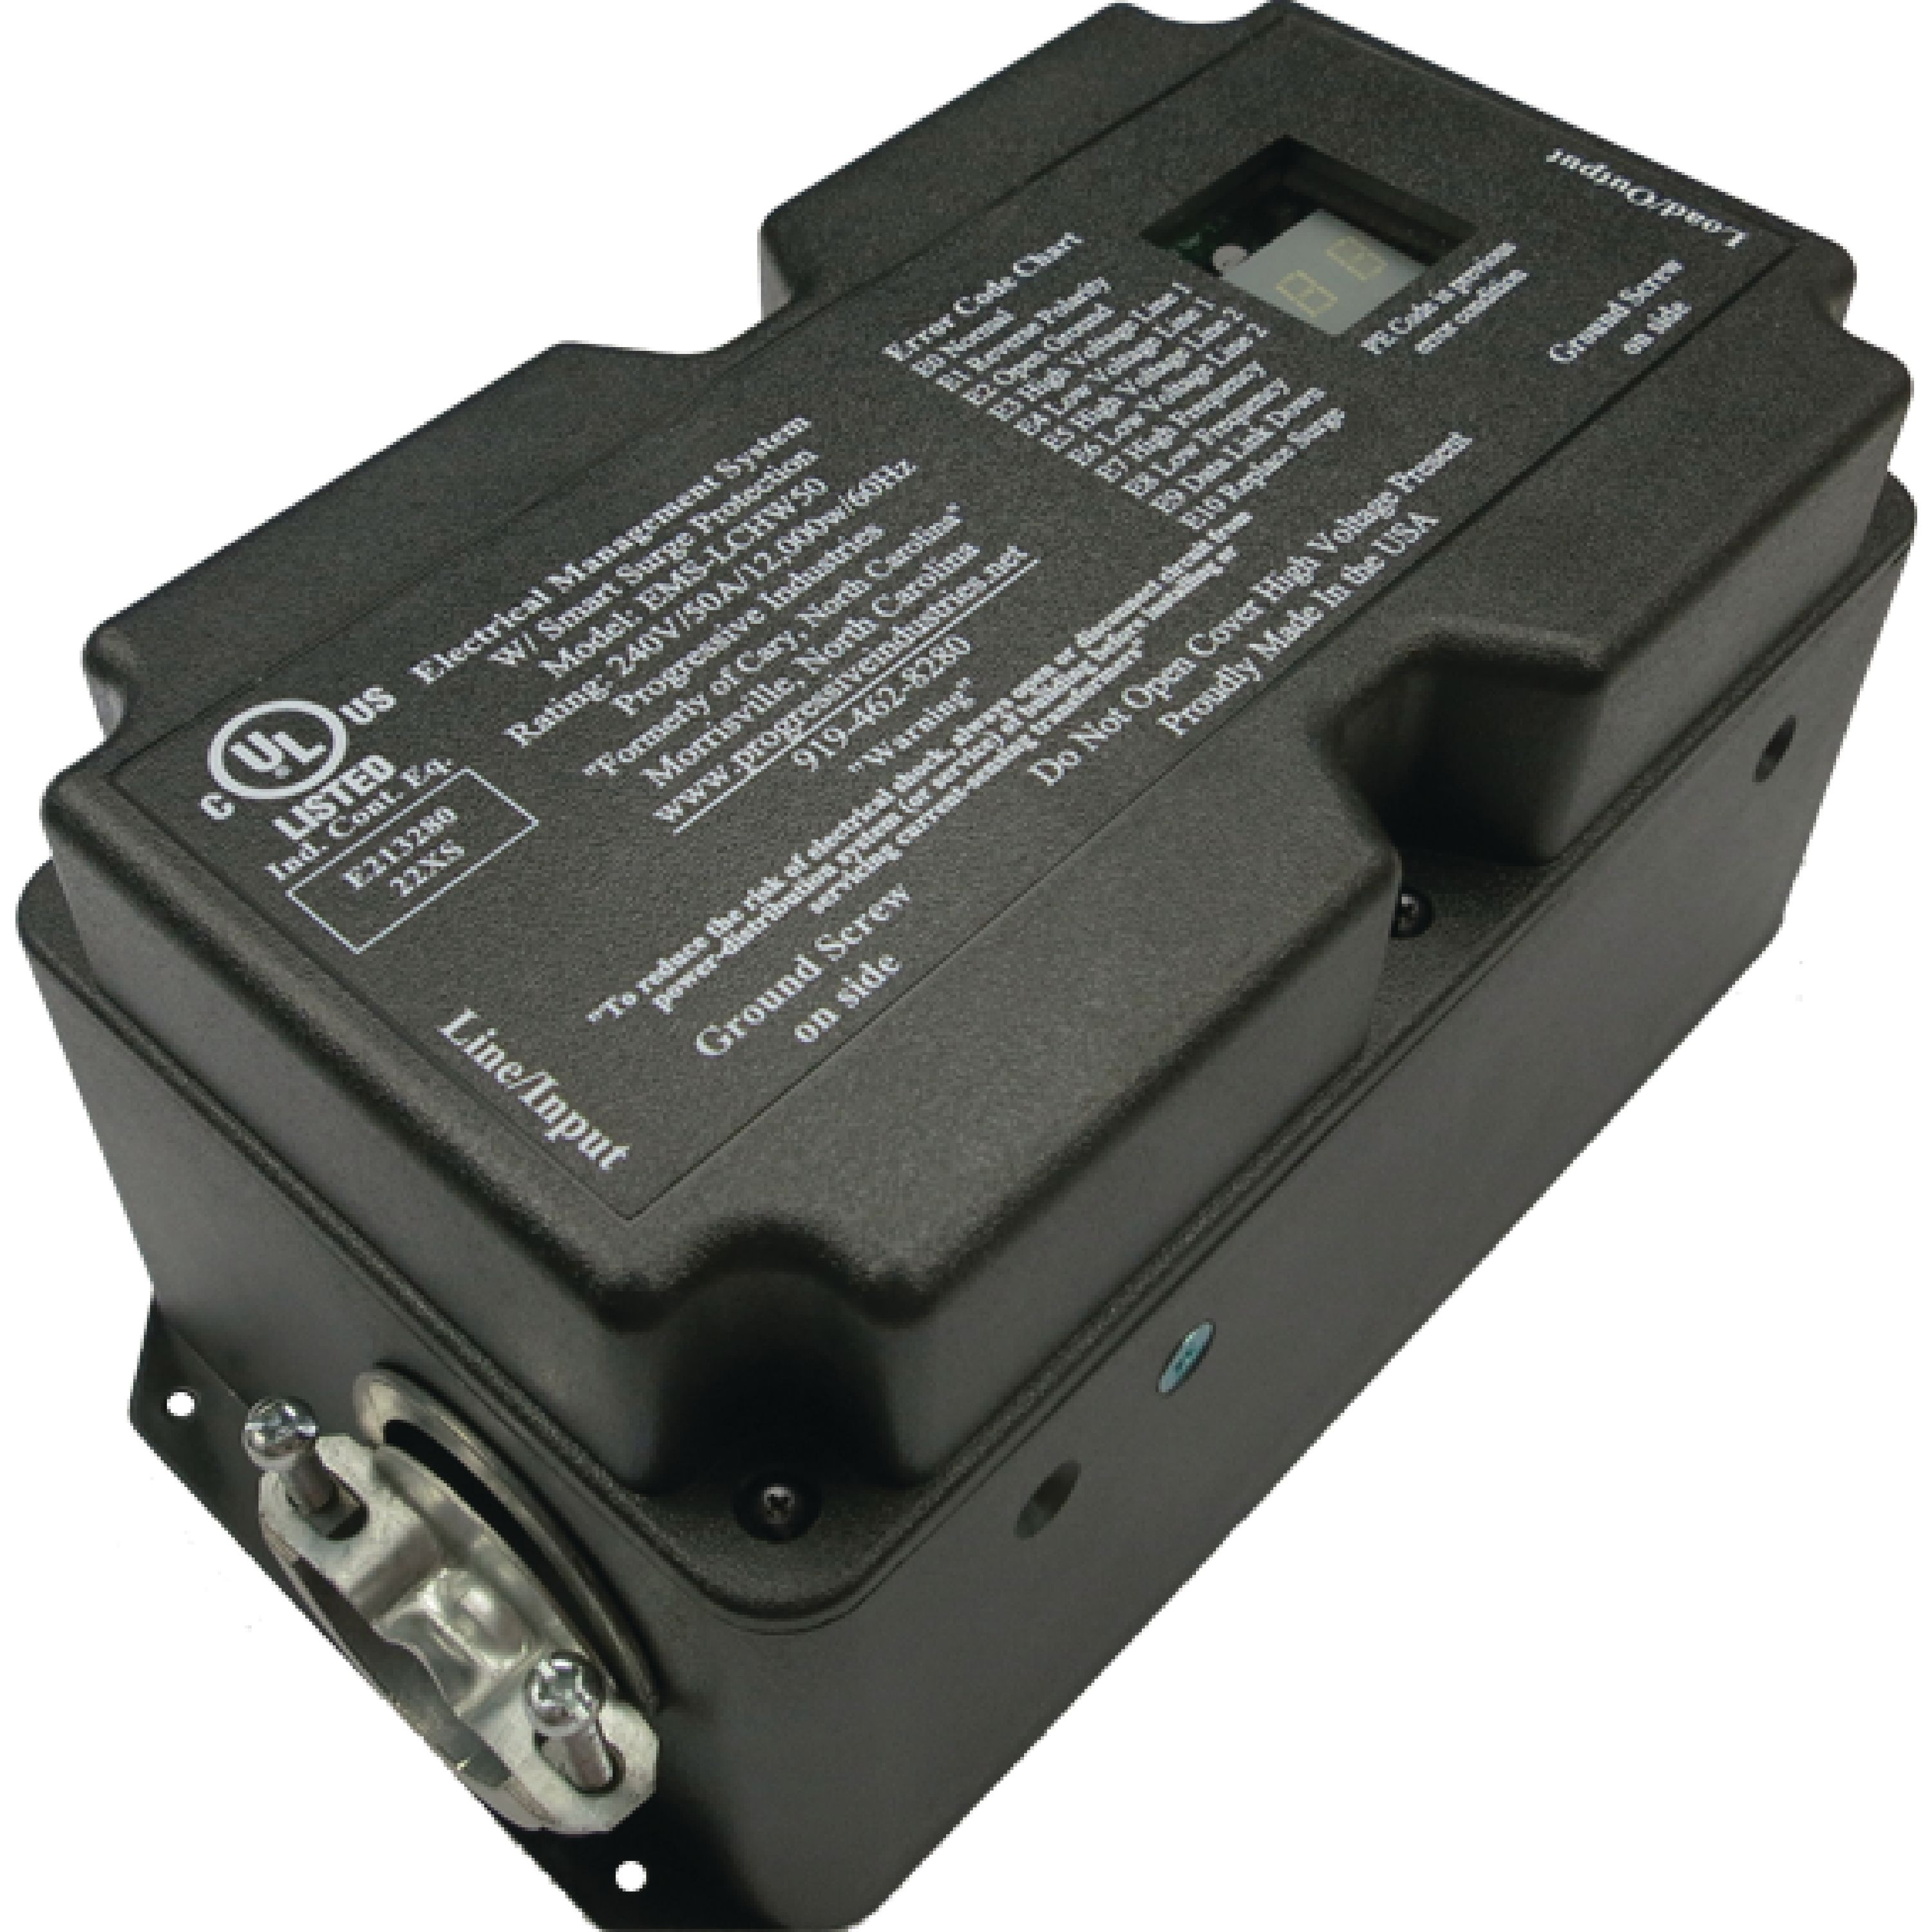 Progressive Industries EMSLCHW50 50A 120/240V Hardwired RV Surge & Electrical Protector with Integrated Display